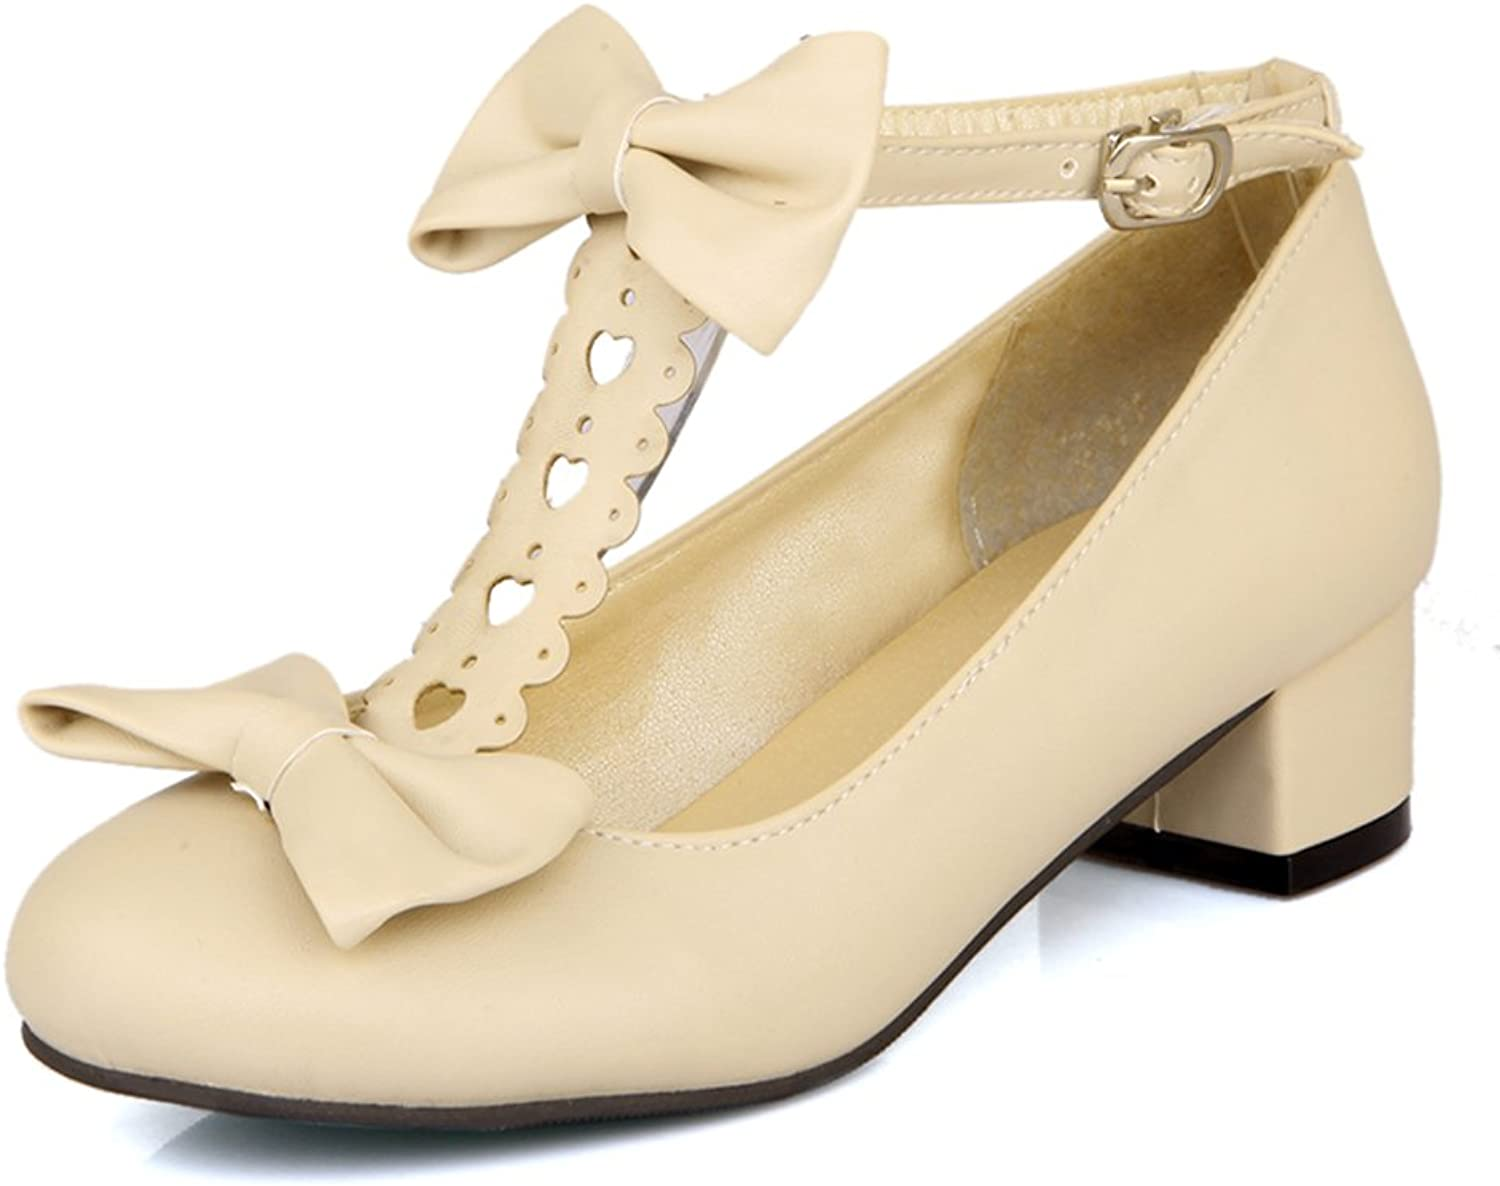 Lucksender Womens Round Toe T-Strap Cute Mary Jane Pumps shoes with Bowknot